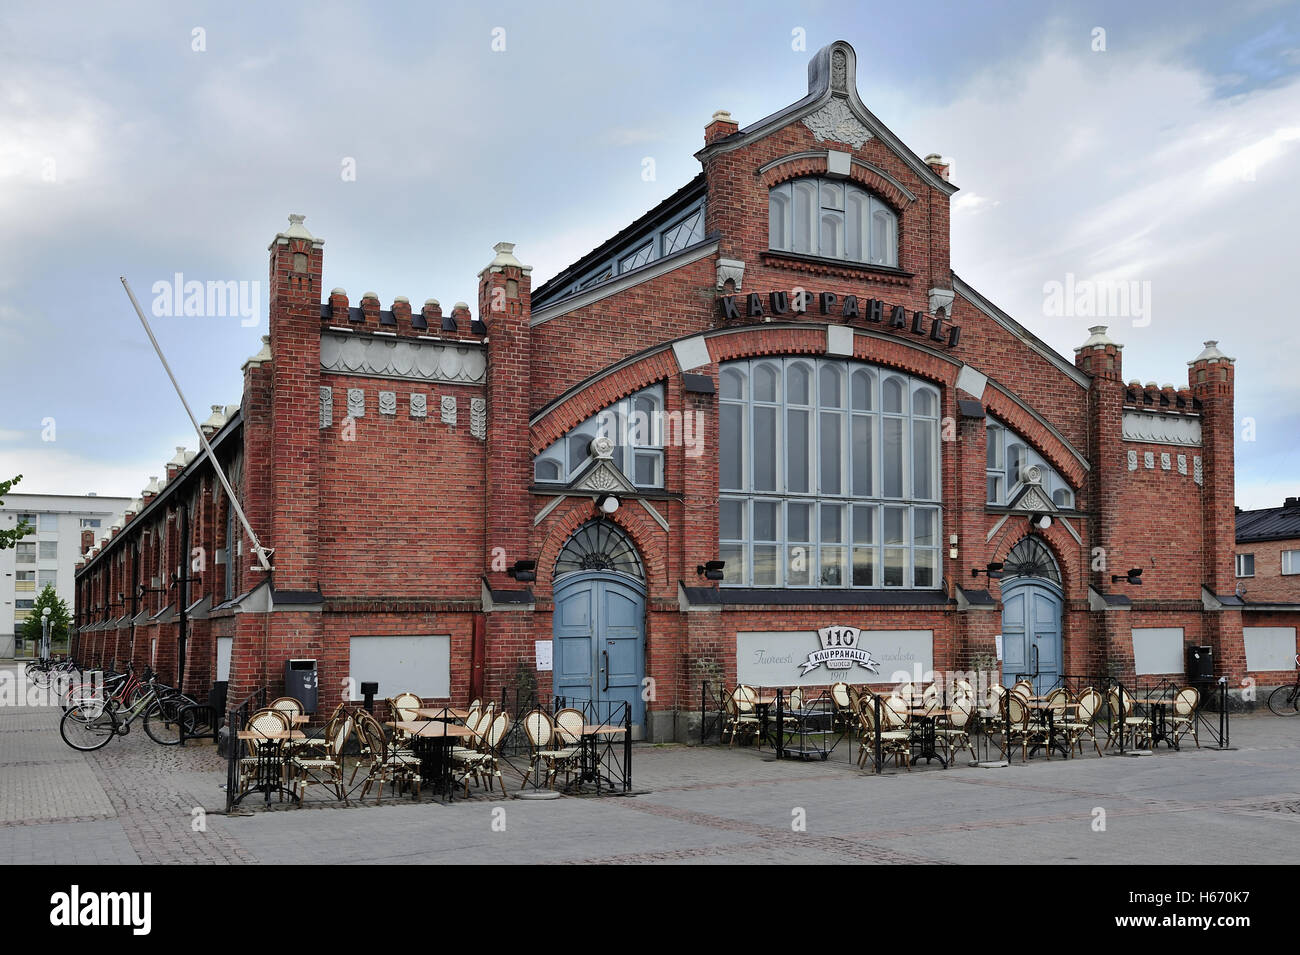 The Oulu Market Hall  was designed by architects Karl Lindahl and Walter Thome, opened in 1901 - Stock Image